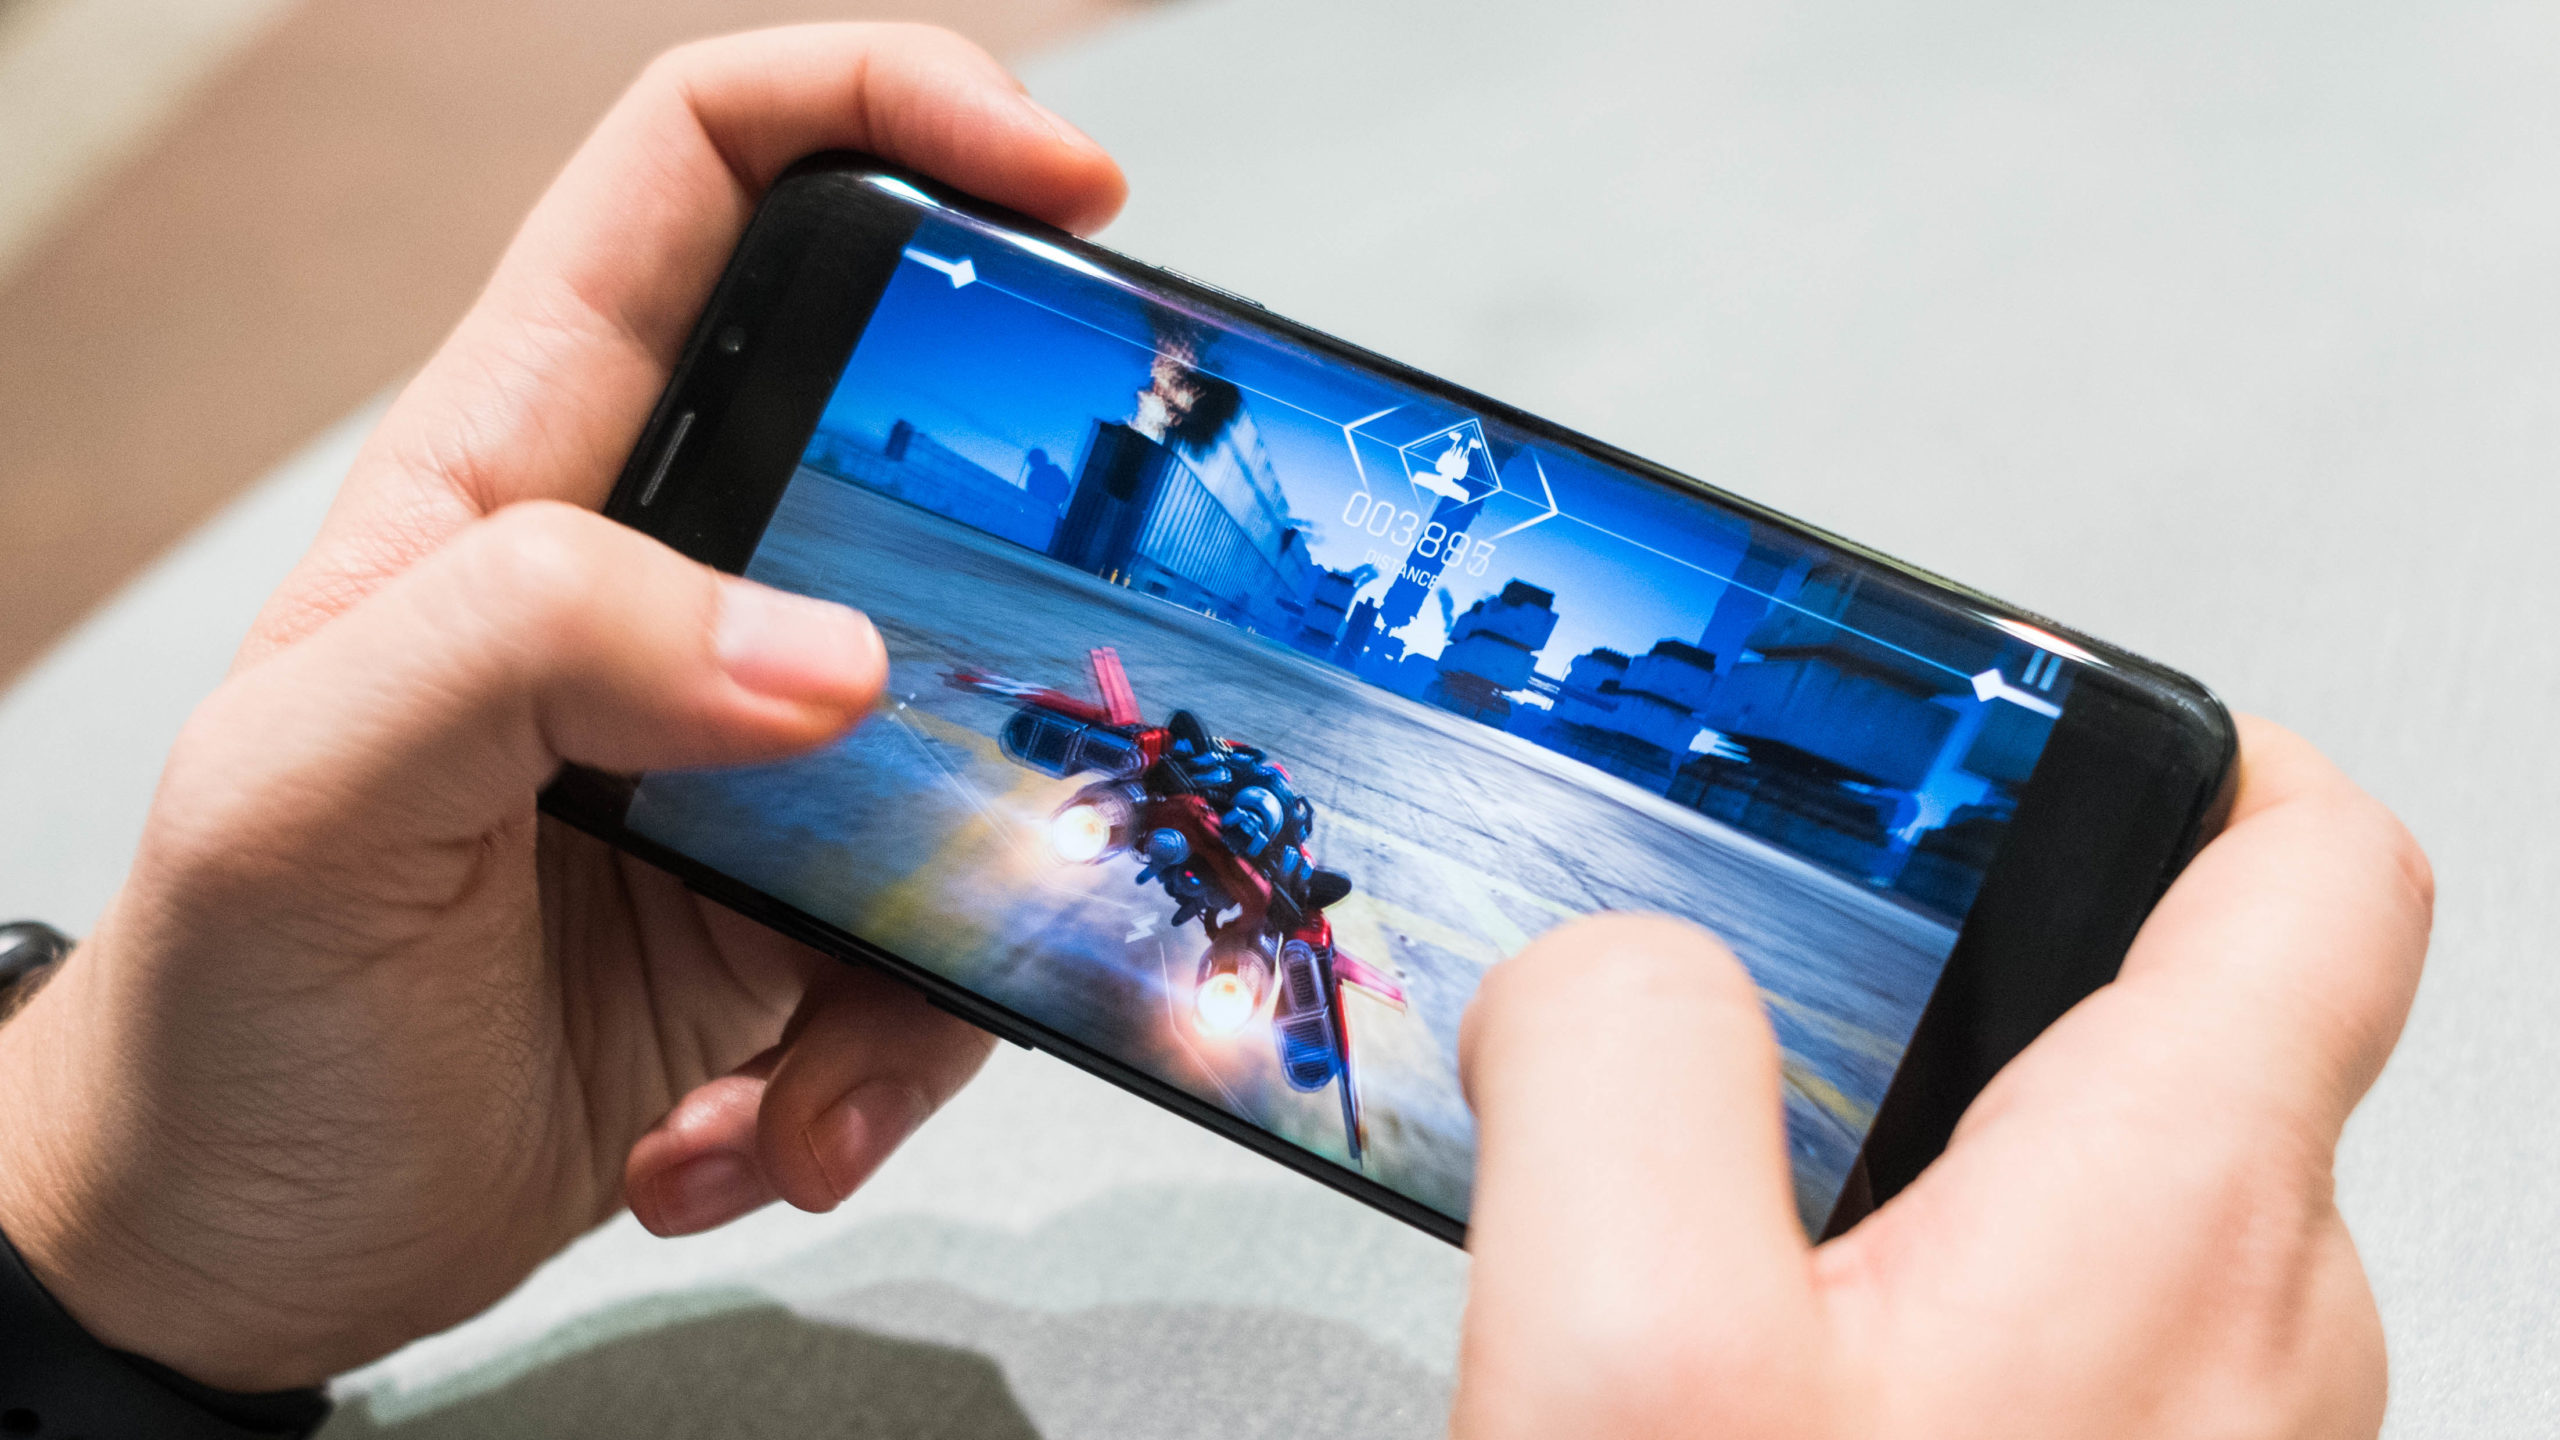 redmi mobiles best suited for gaming